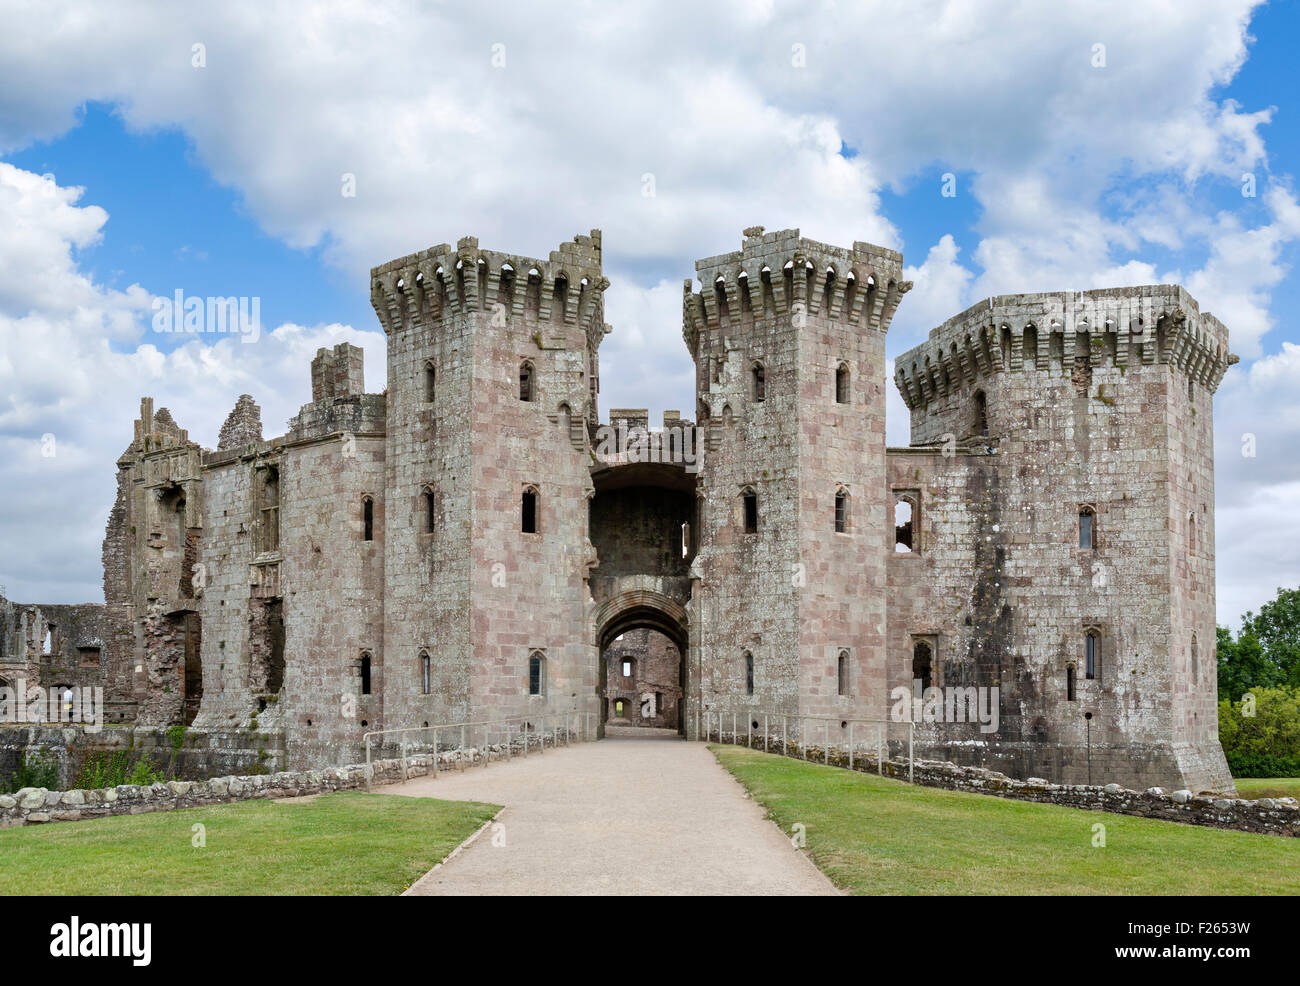 The ruins of Raglan Castle, Chepstow, Monmouthshire, Wales, UK - Stock Image